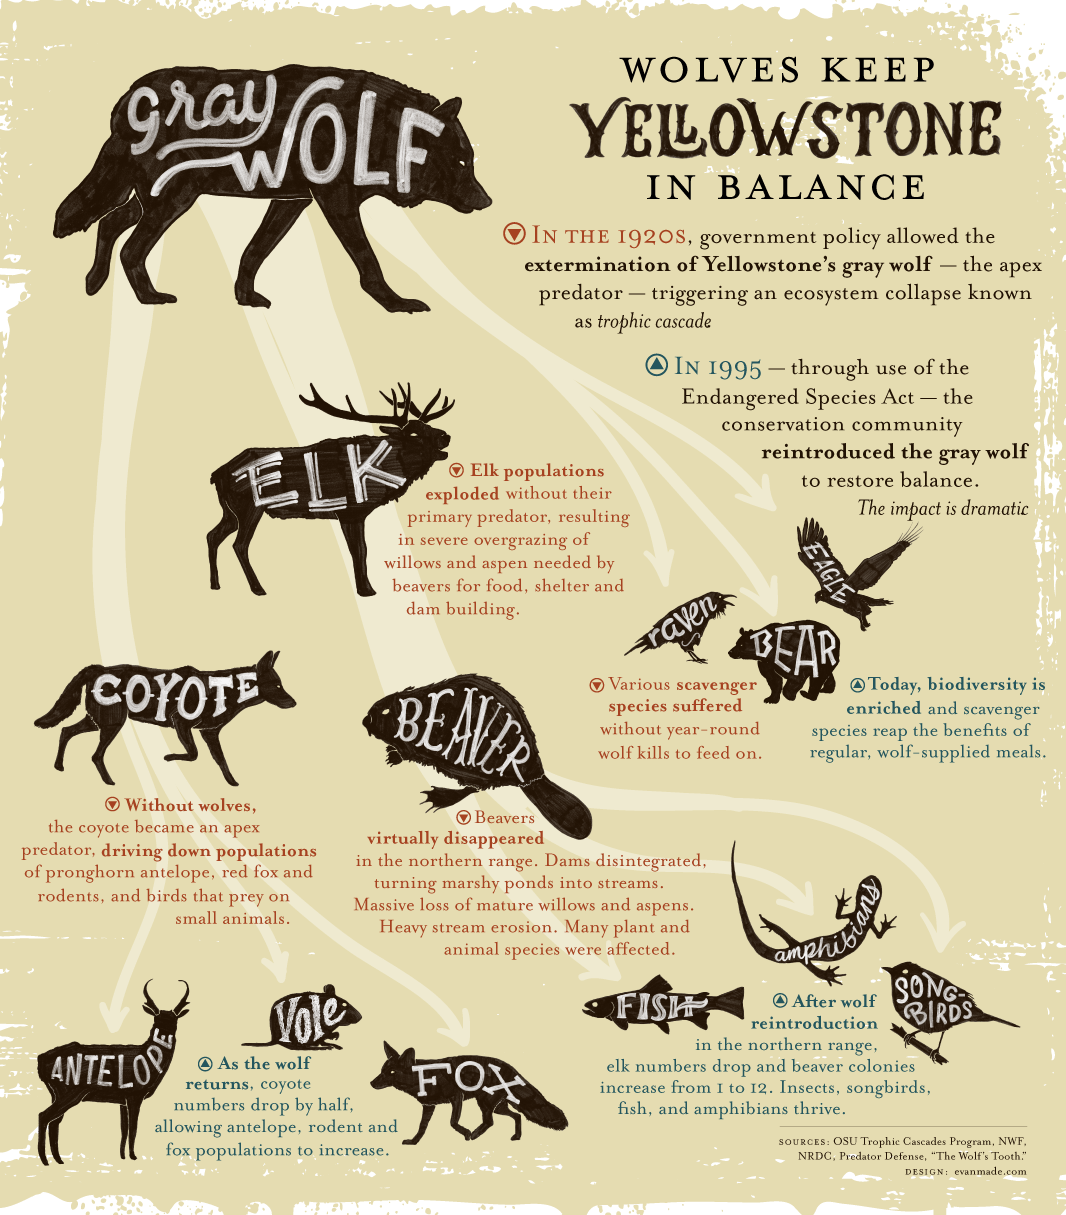 wolf food chain diagram deutz emr2 wiring infographic wolves keep yellowstone in the balance